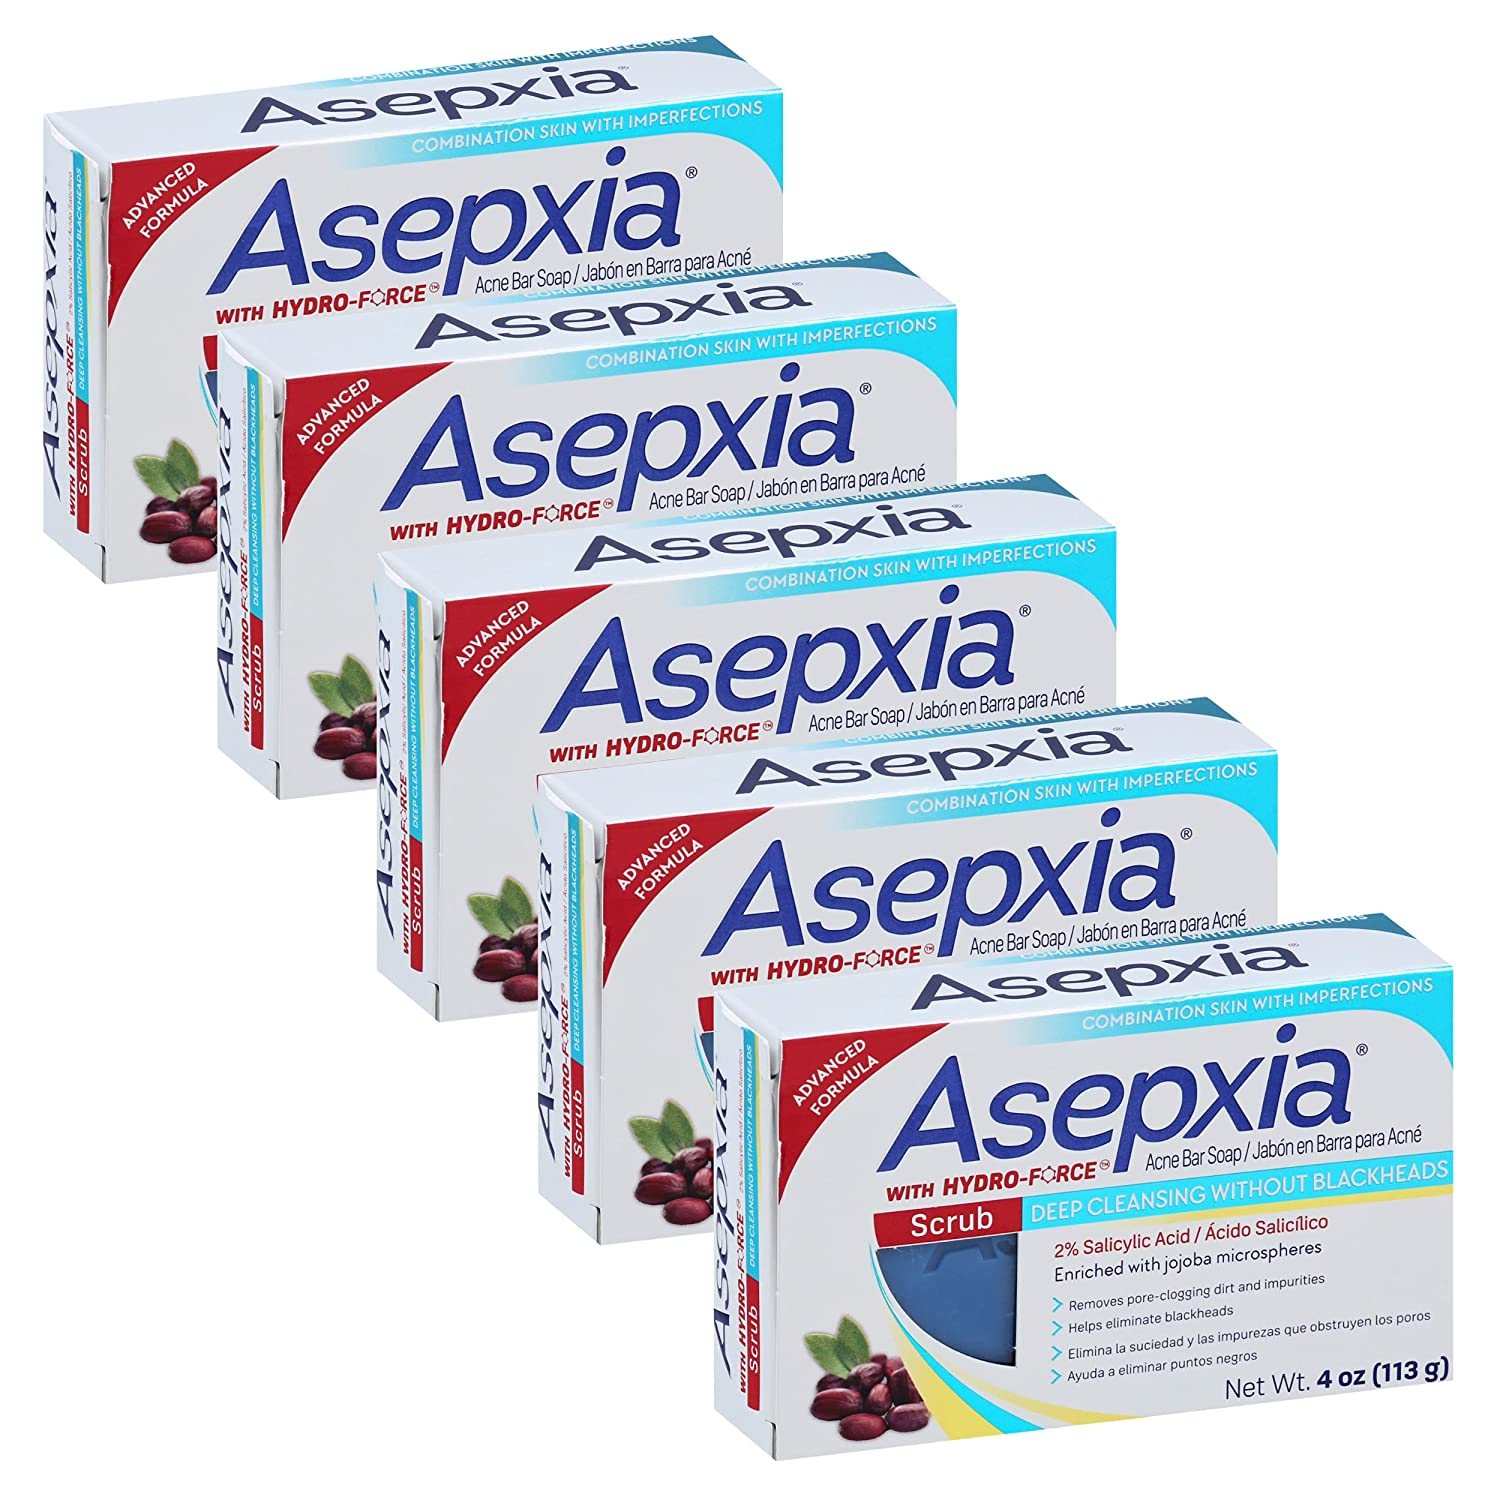 Asepxia Cleansing Bar Scrub, 4 Ounce Multipack (Pack of 5): Beauty